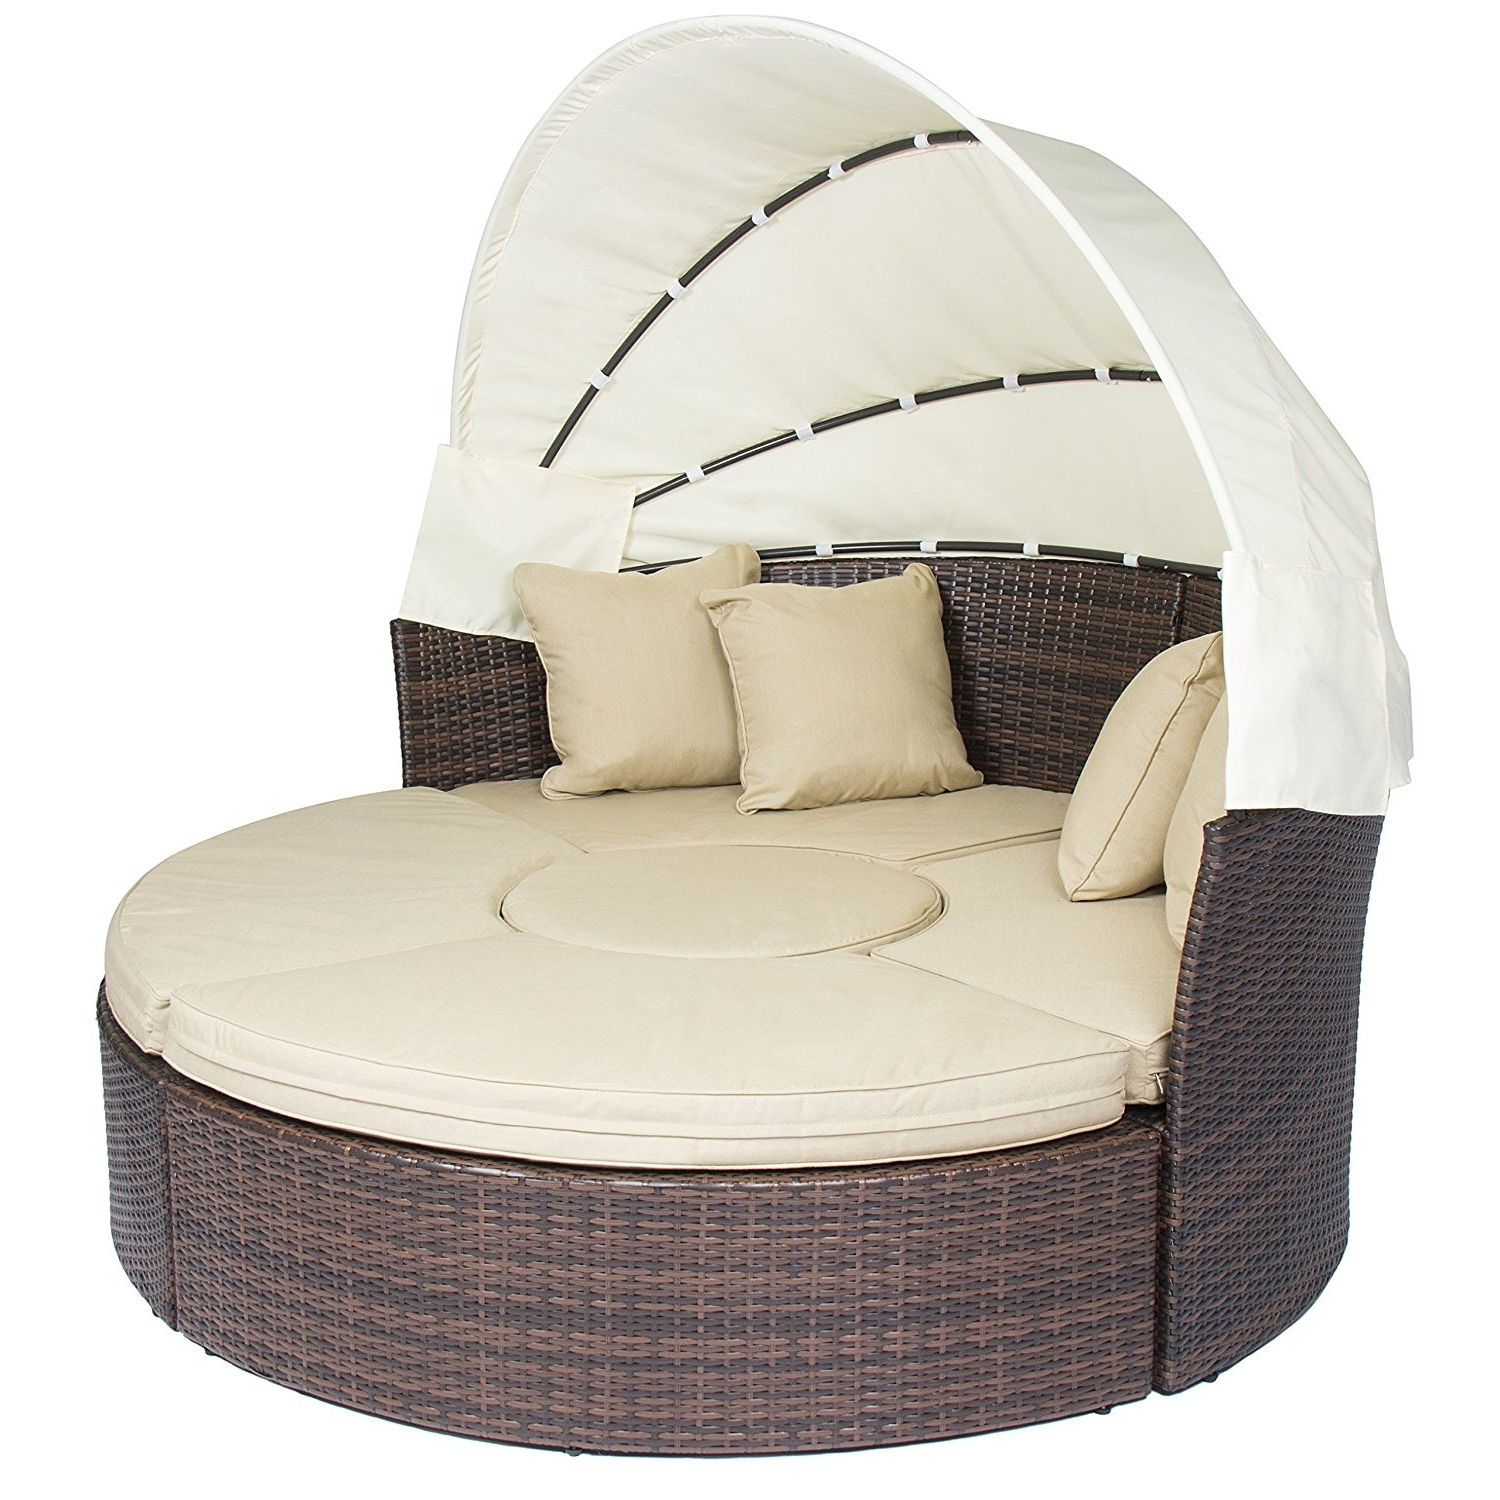 Amazon : Outdoor Patio Sofa Furniture Round Retractable Canopy Regarding Fashionable Outdoor Sofa Chairs (View 3 of 15)